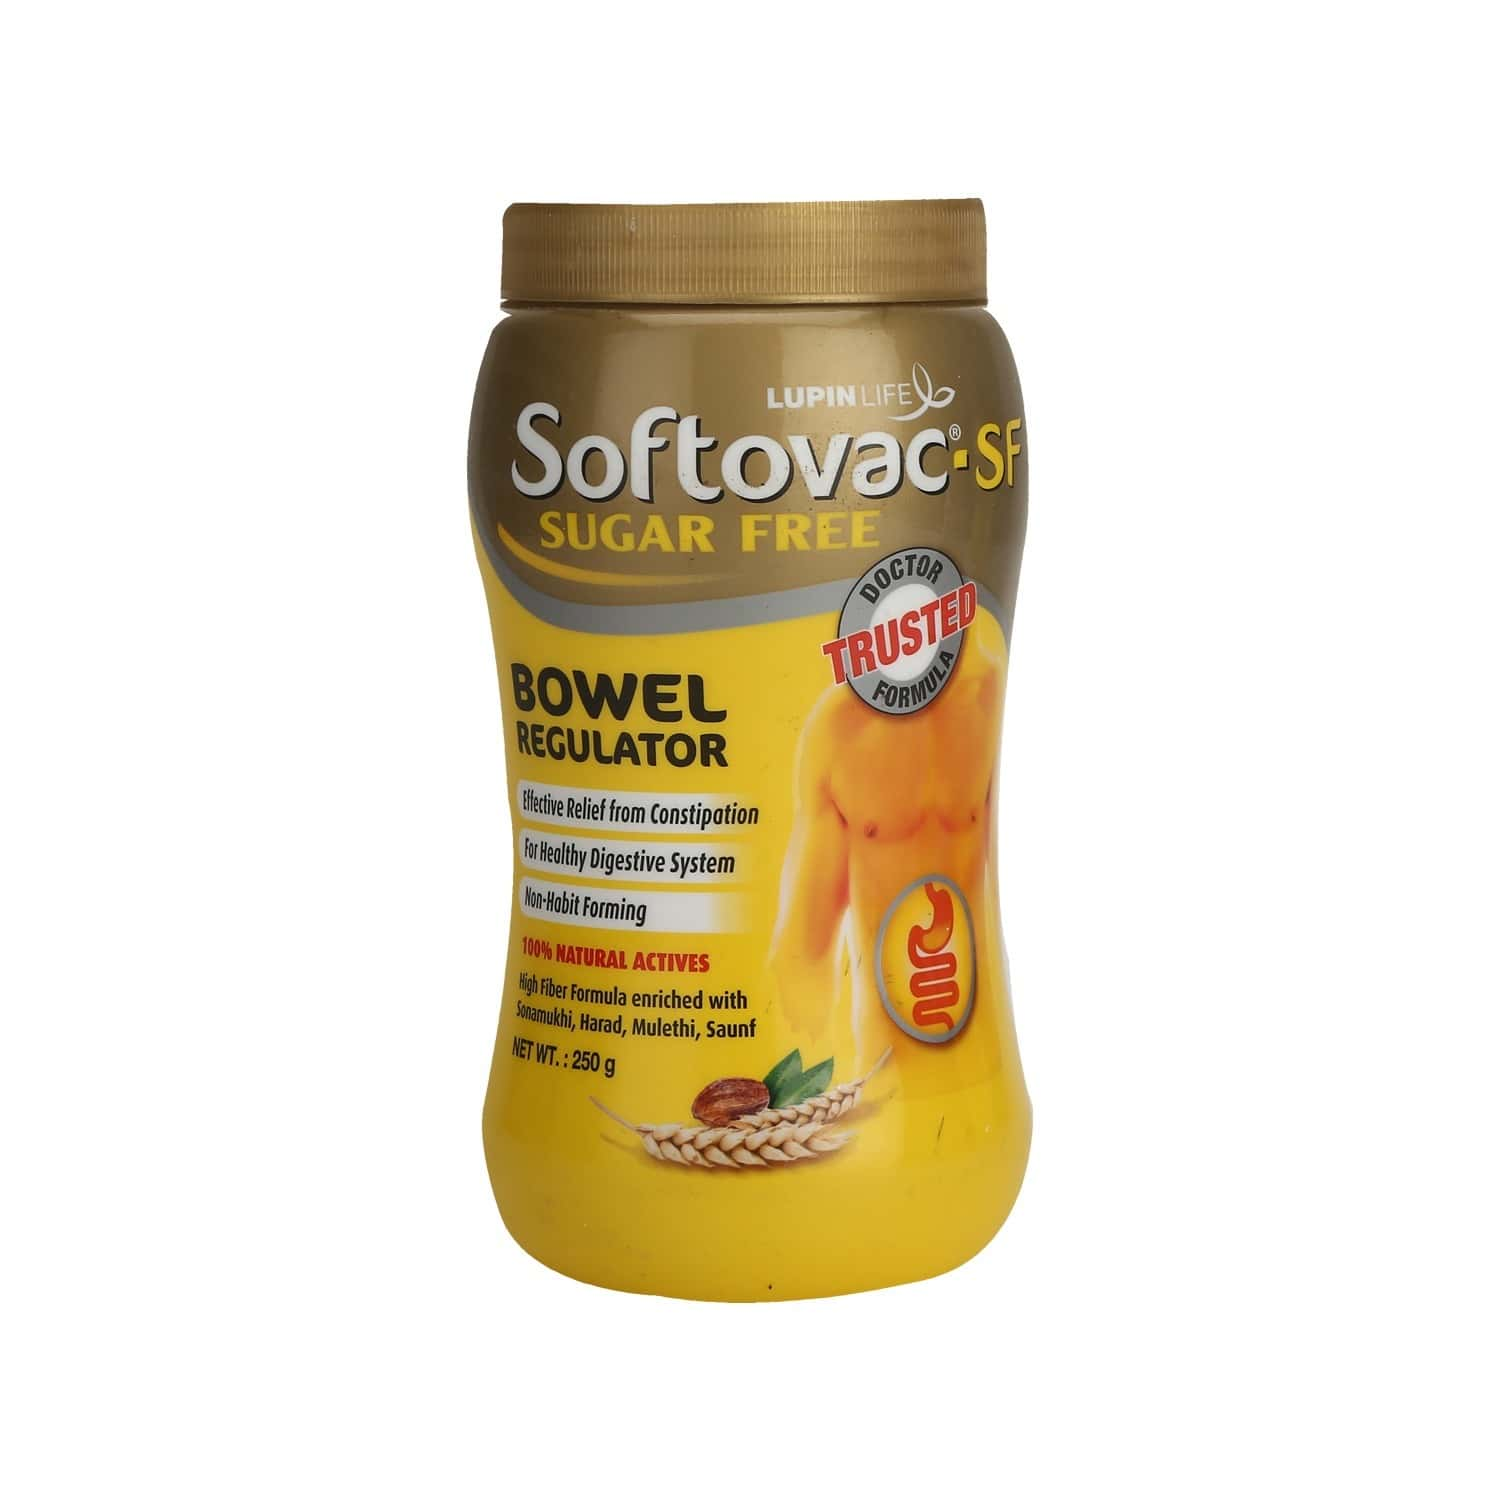 Softovac Sf Constipation Powder Bottle Of 250 G